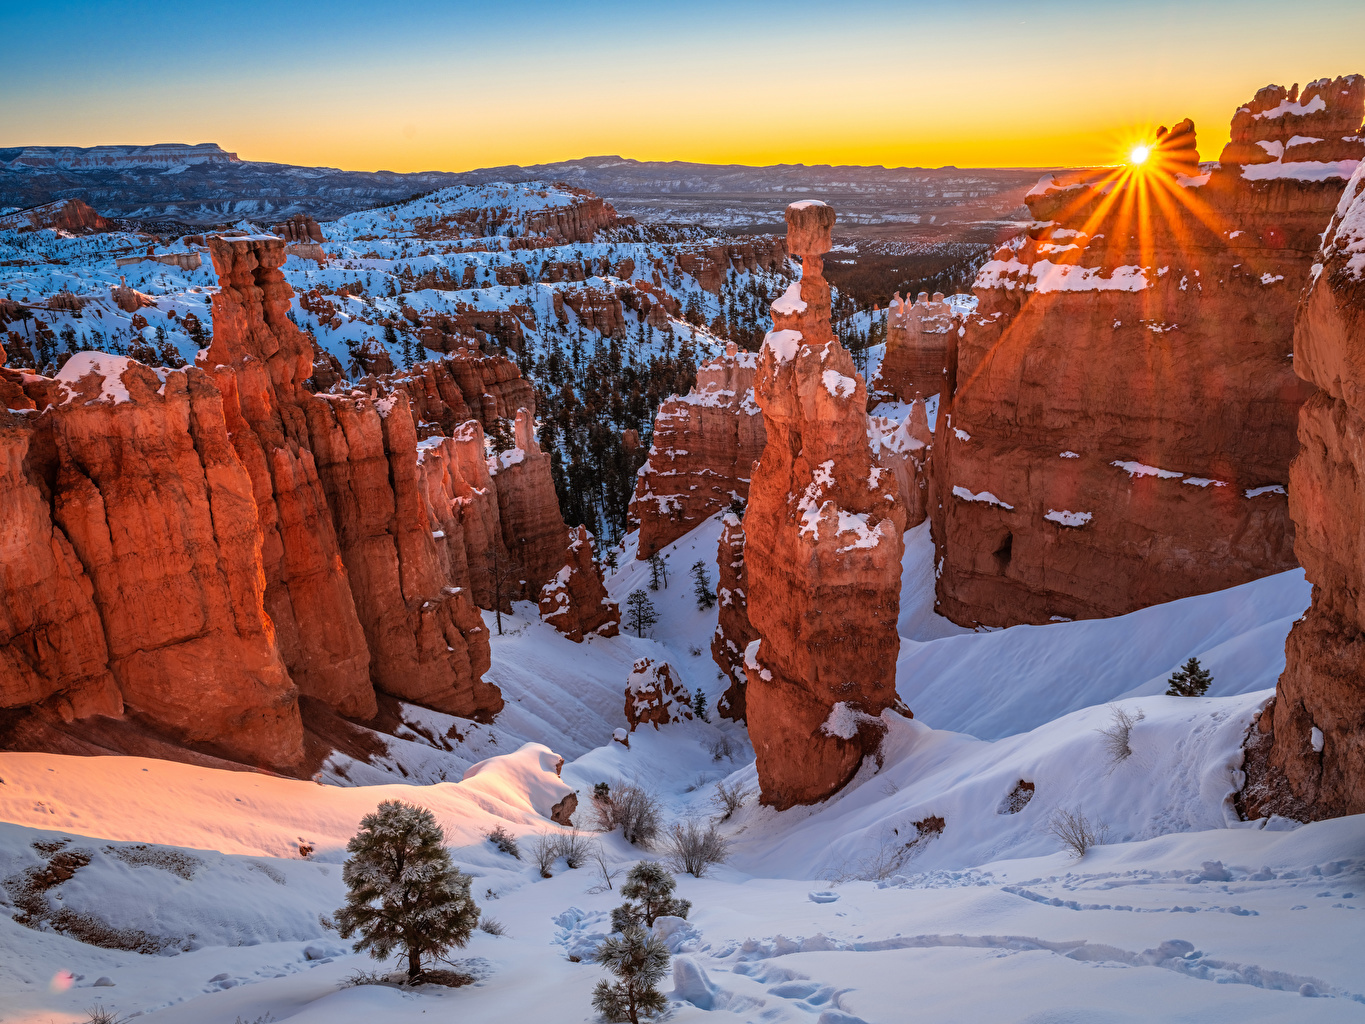 Desktop Wallpapers Rays of light USA Bryce Canyon National Park Rock Winter Spruce Nature park Snow Sunrises and sunsets Crag Cliff canyons Parks sunrise and sunset